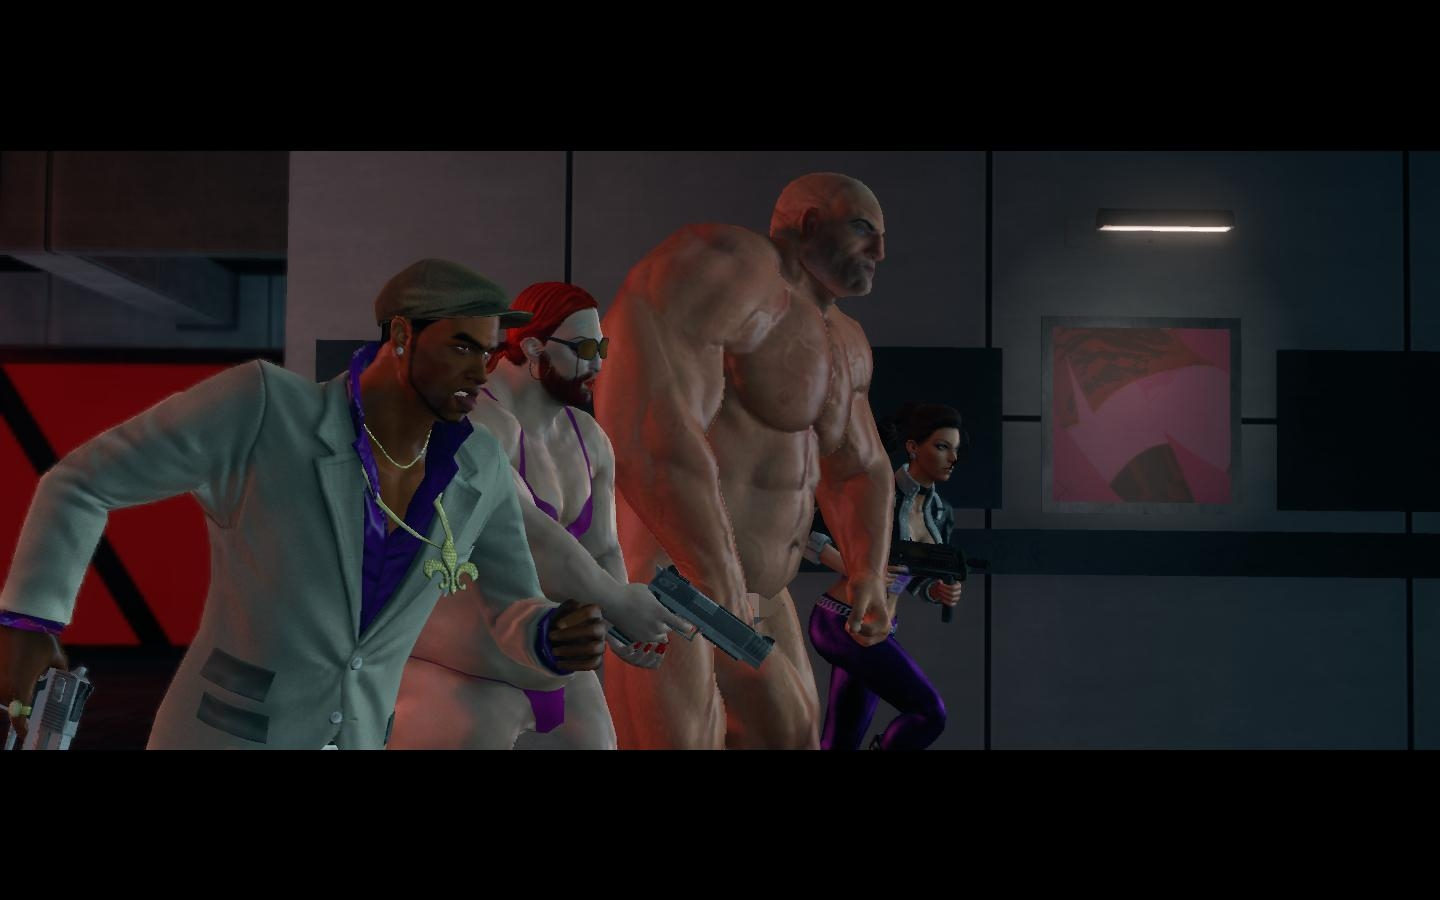 Saint s row sex